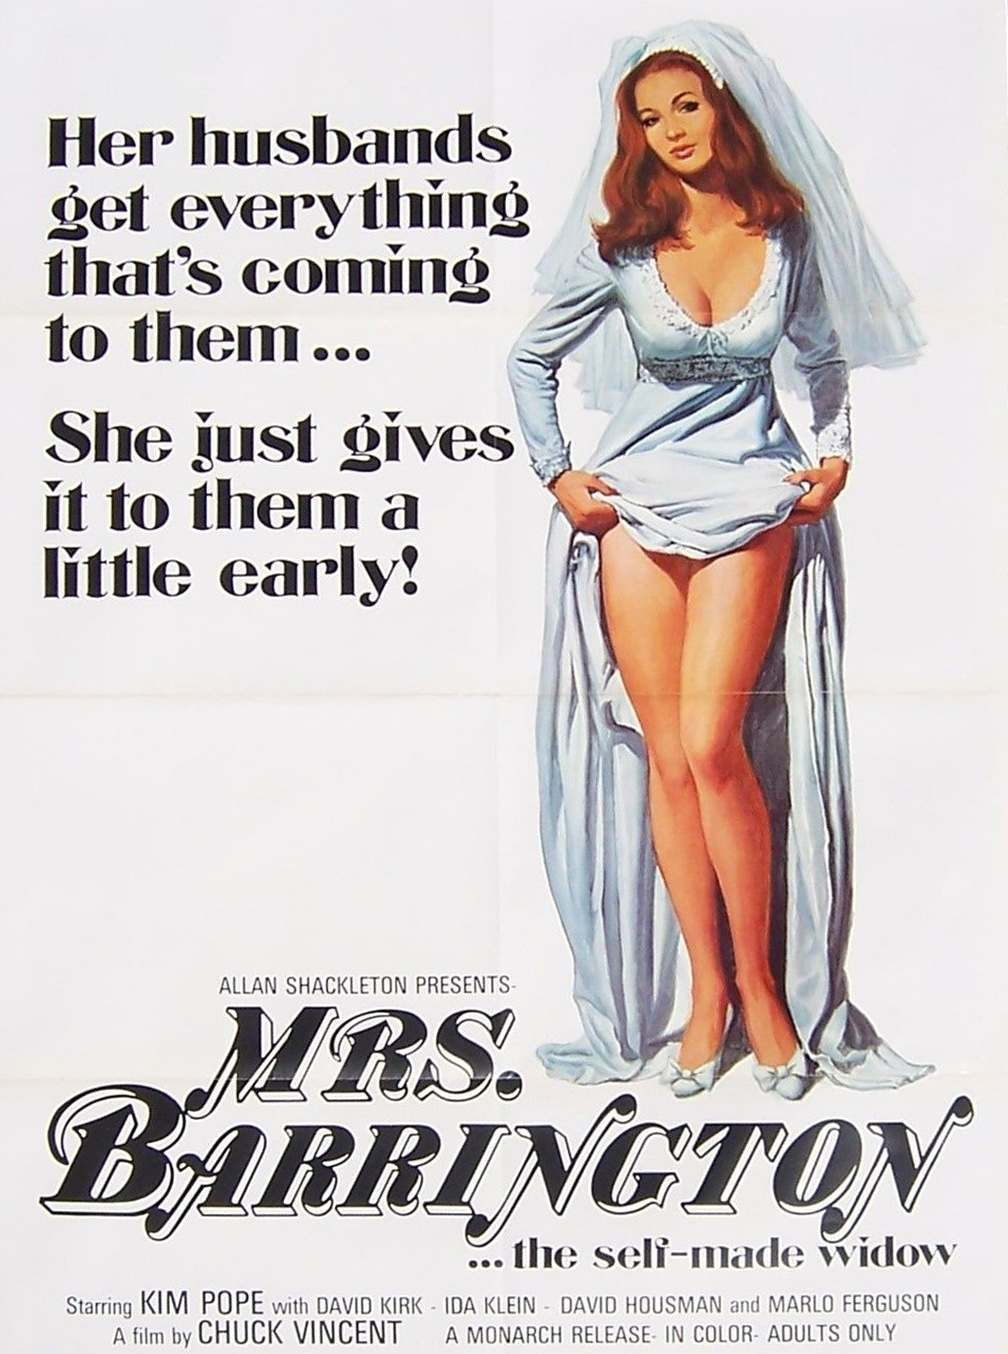 sexploitation movie poster (12)